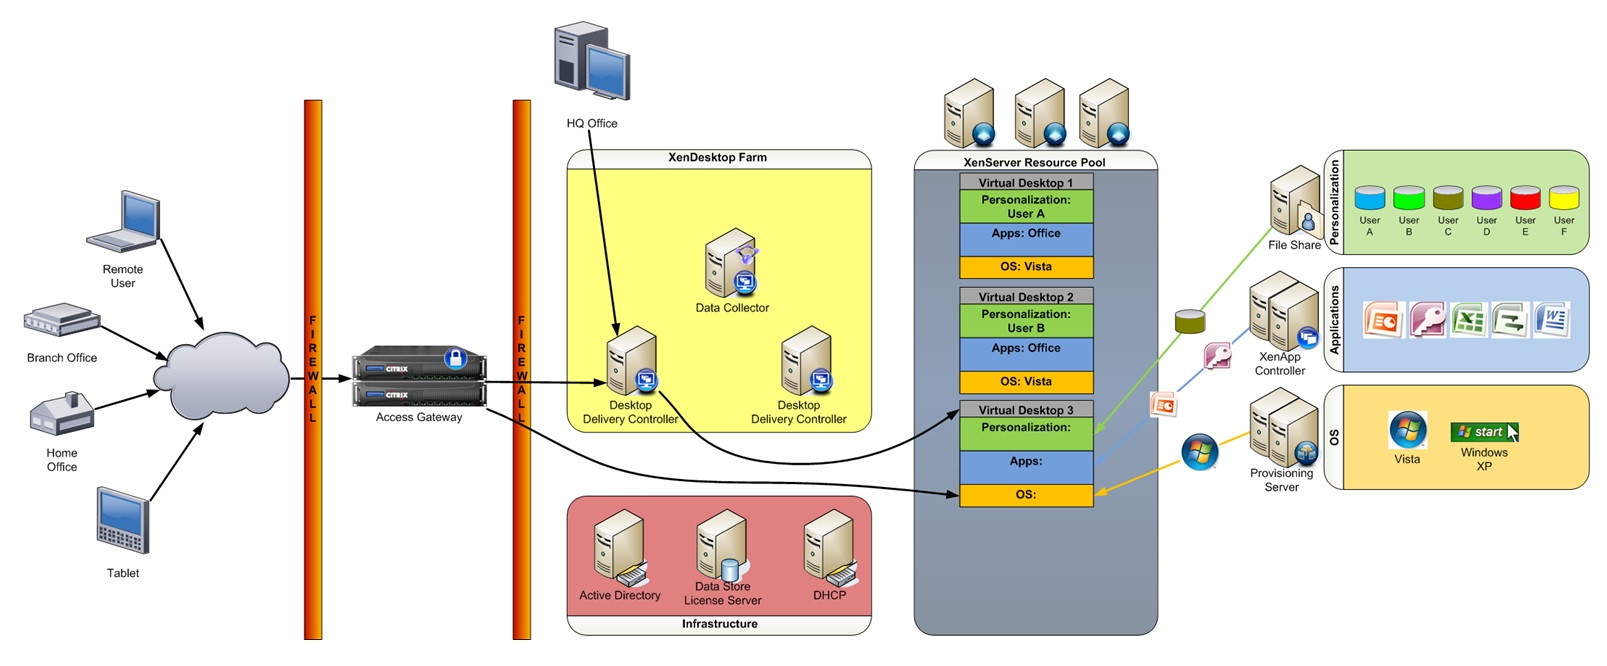 Vdi architecture diagram vdi get free image about wiring for Xenapp 6 5 architecture